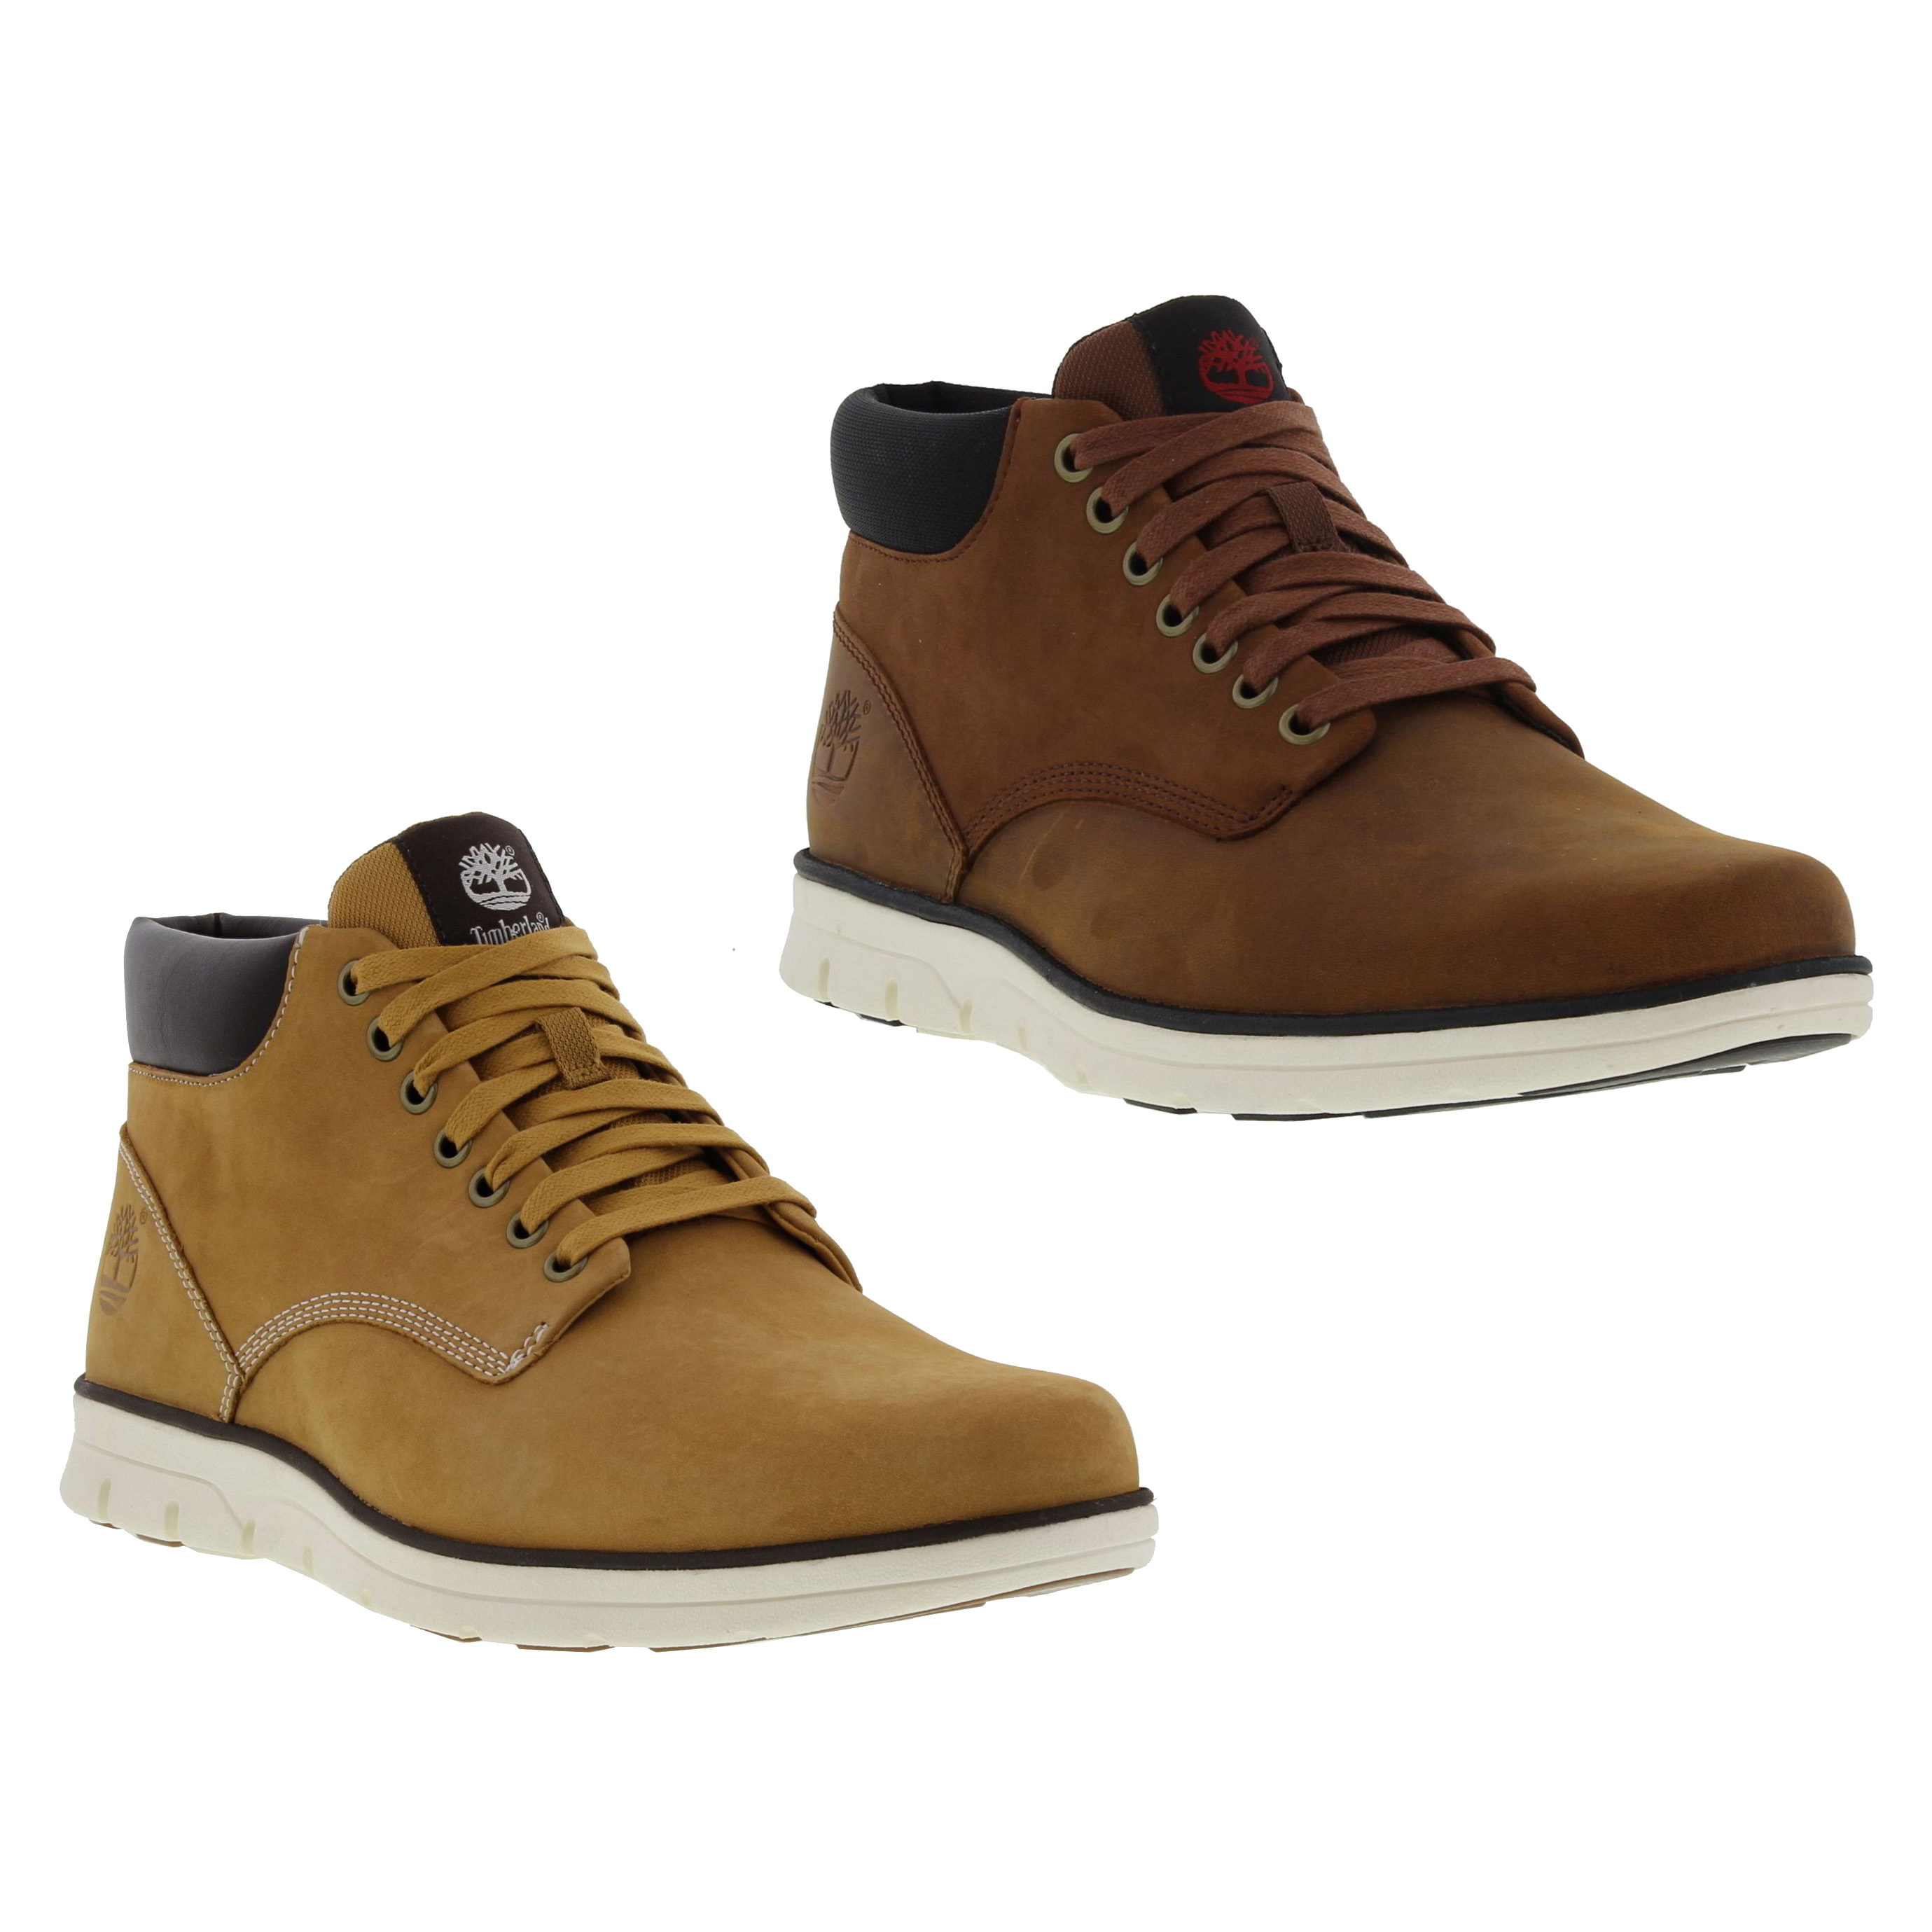 timberland bradstreet chukka boots mens leather ankle boots size 8 11 ebay. Black Bedroom Furniture Sets. Home Design Ideas